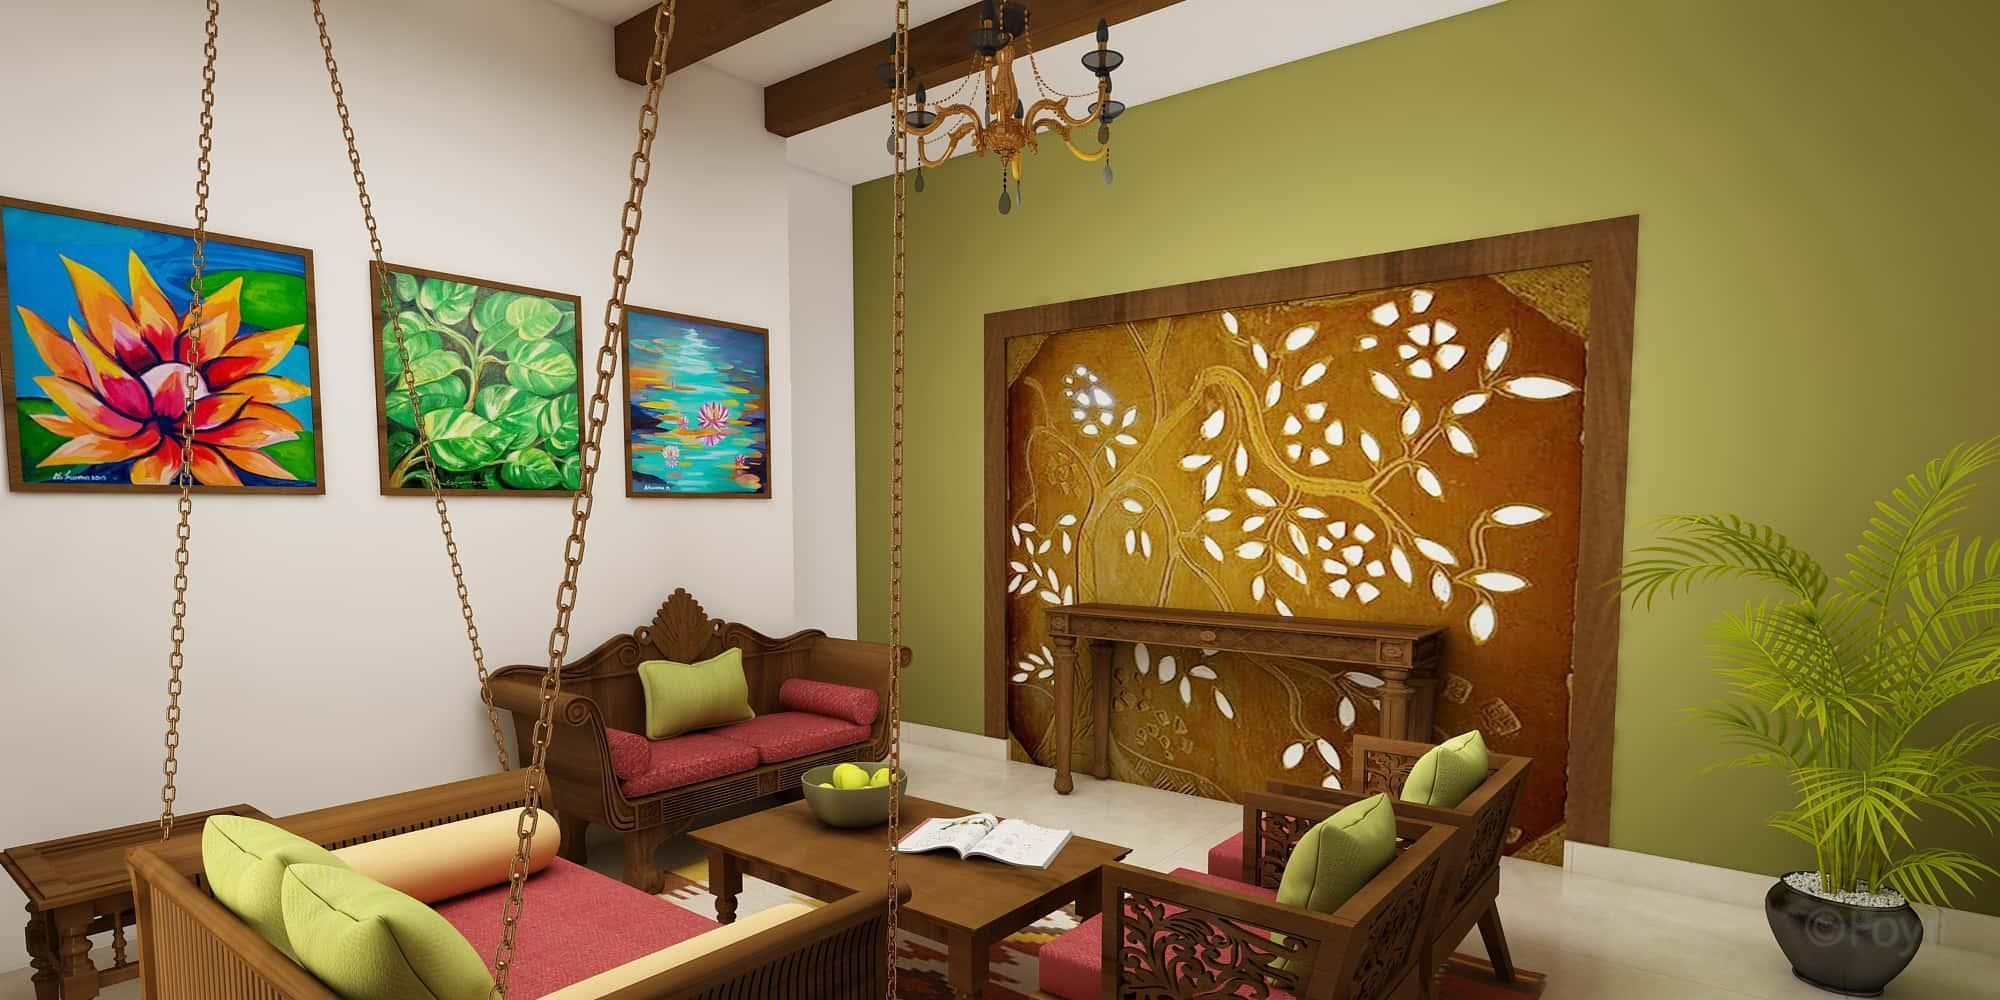 Interior design ideas indian ethnic